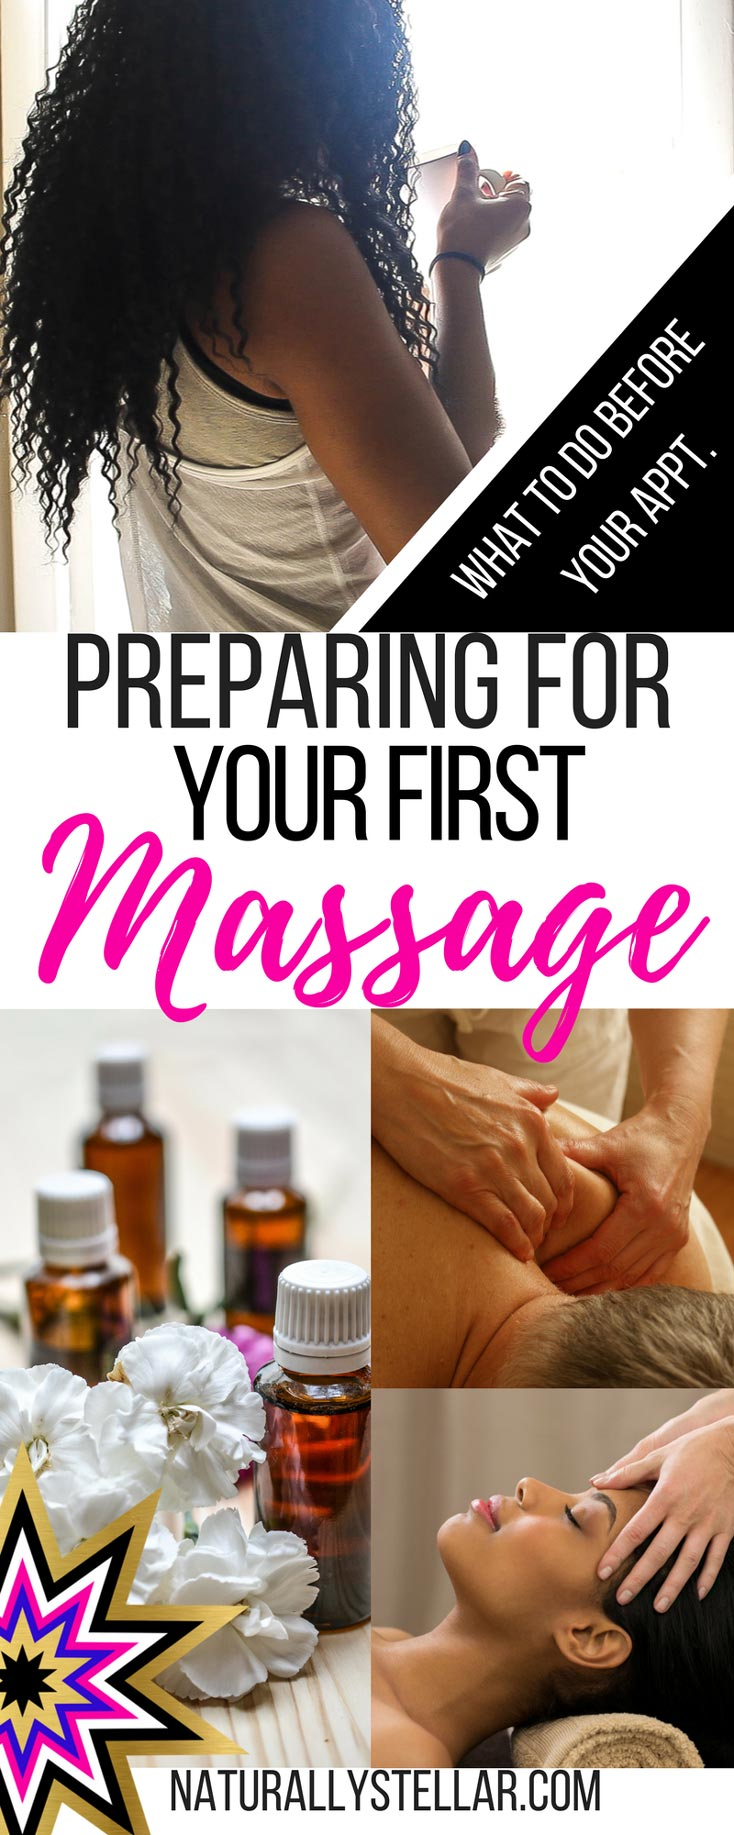 Preparing For Your First Massage | Naturally Stellar